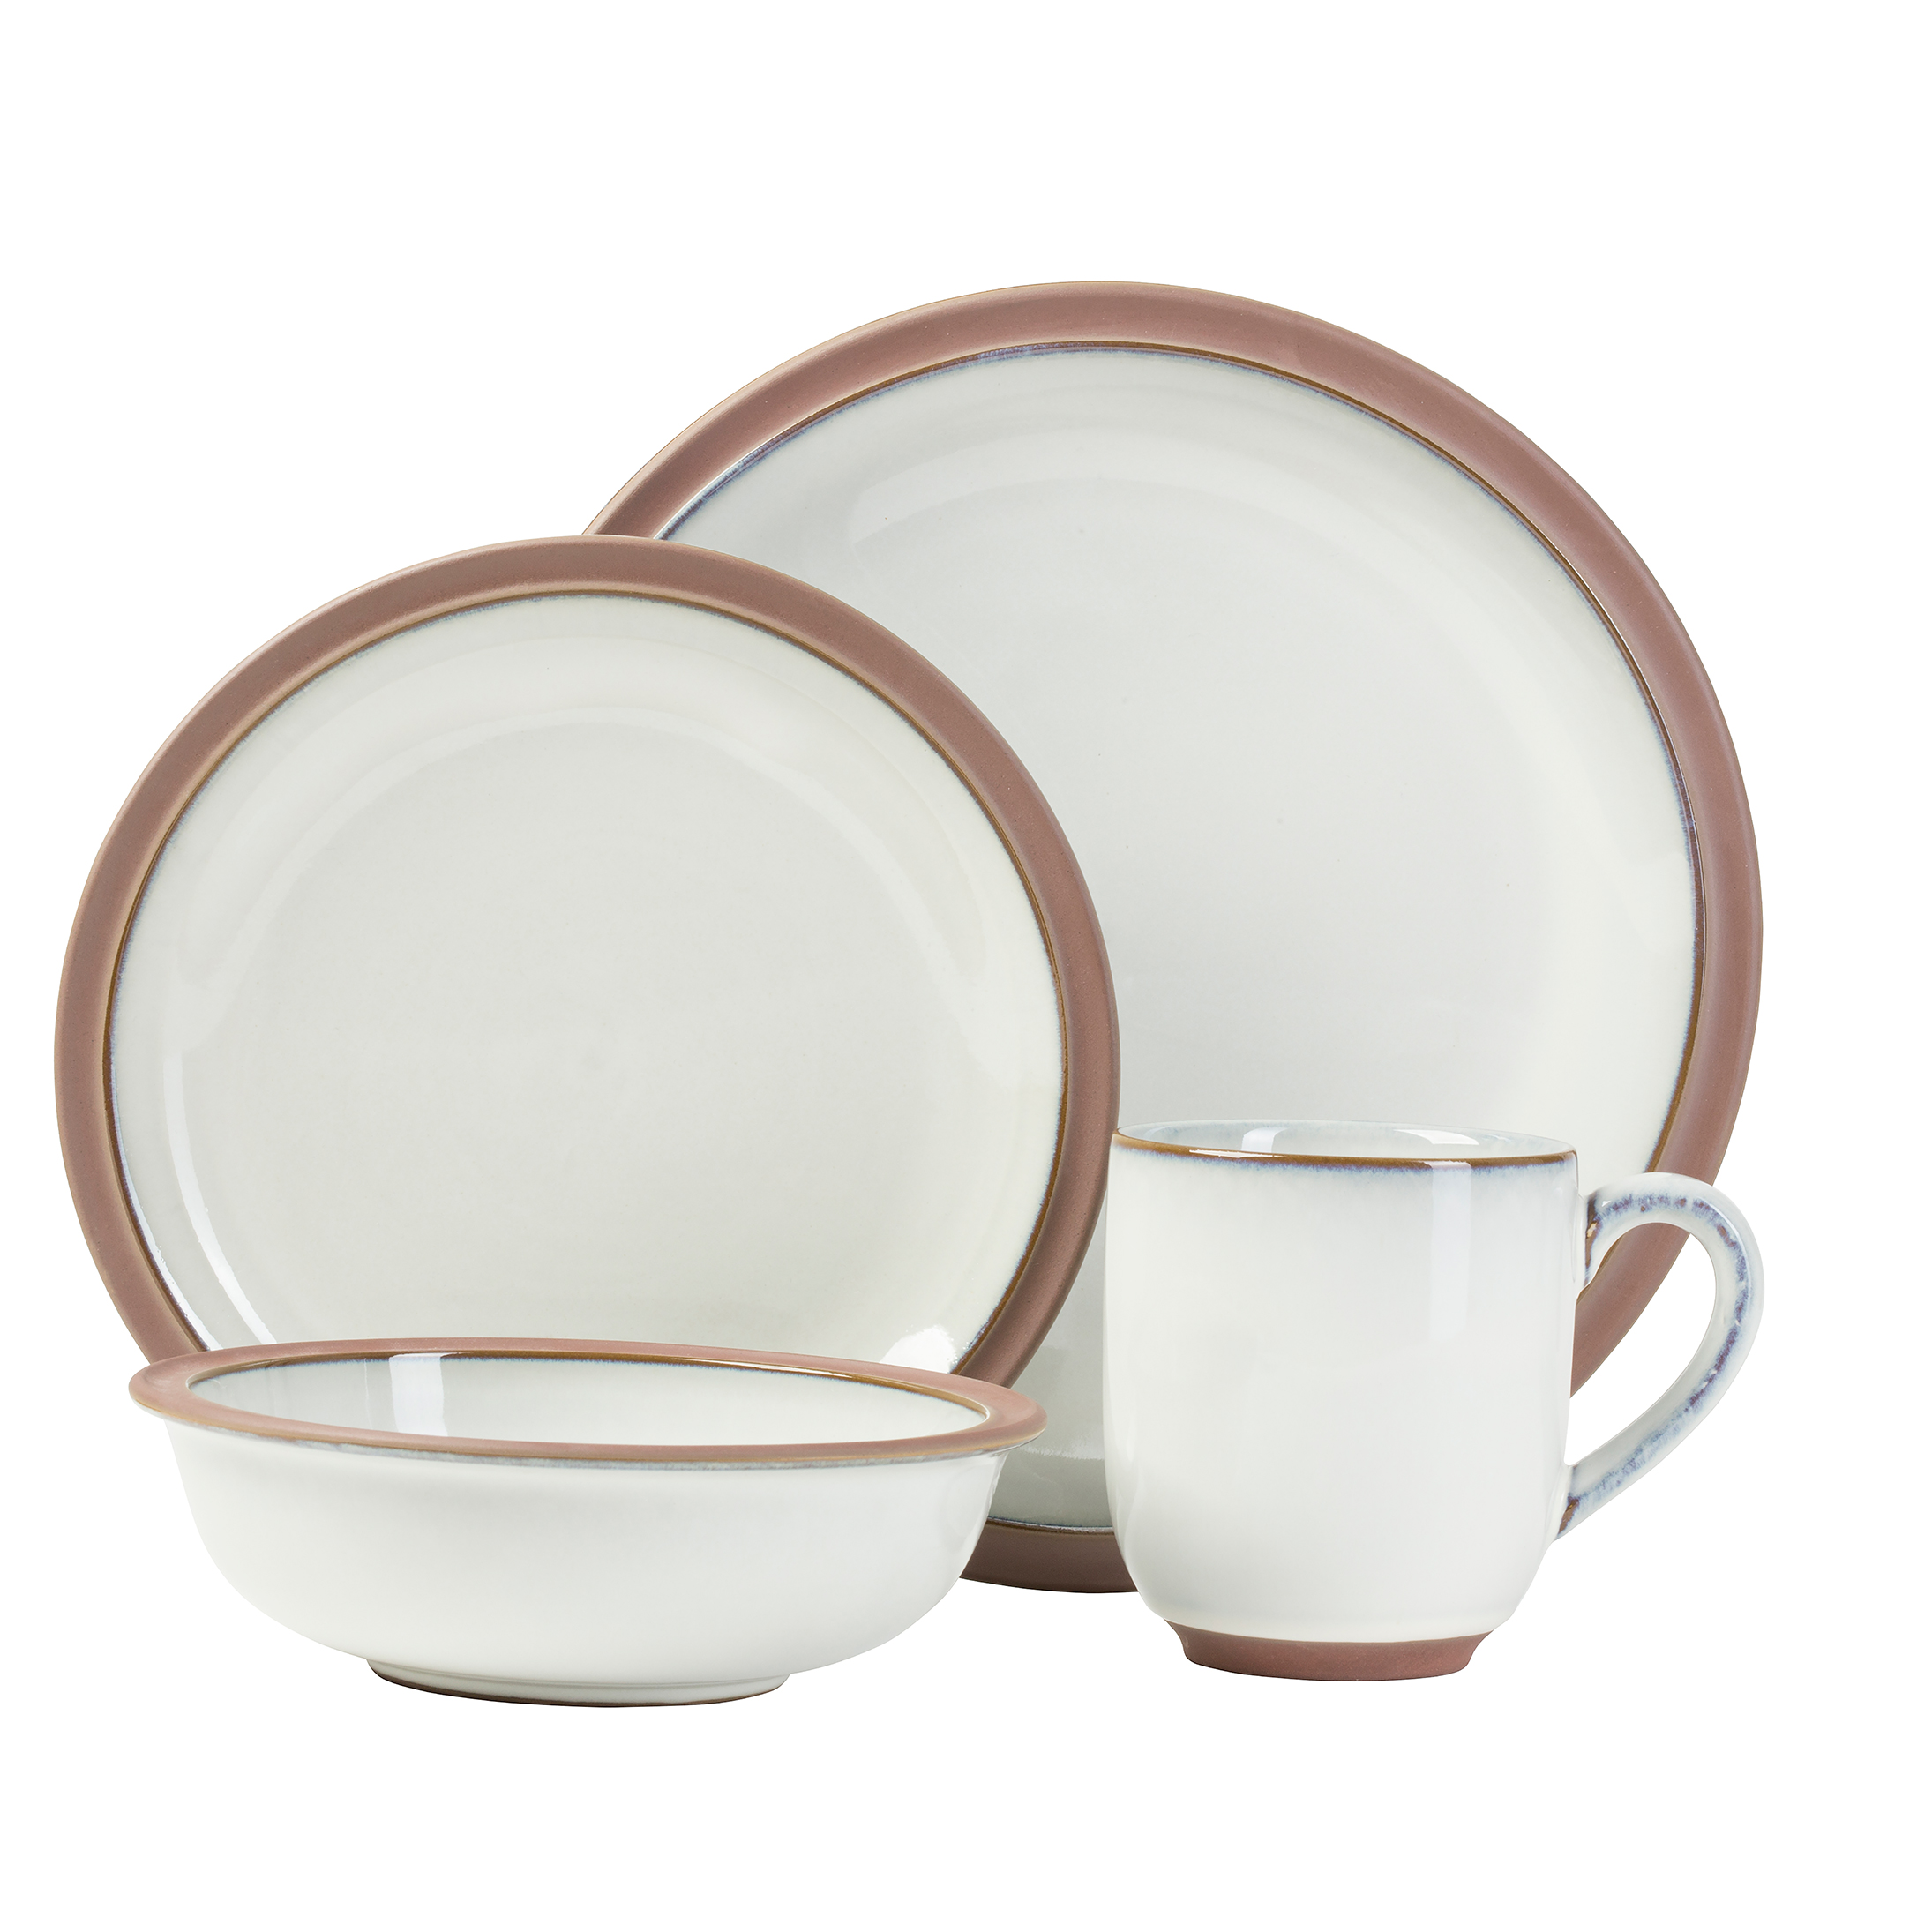 Eterra 16 Piece Dinnerware Set